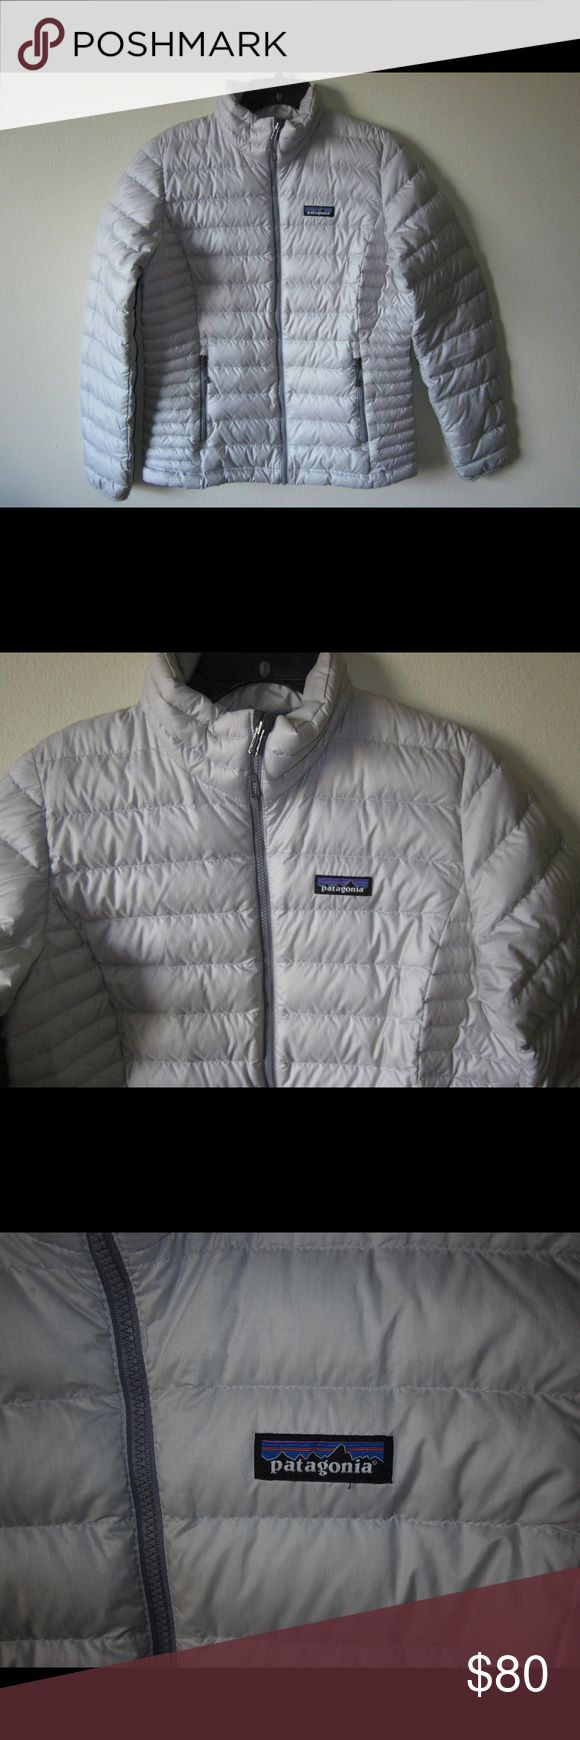 Patagonia Down Sweater Jacket M Very good condition with just some light staining on the cuffs and a small spot on the front where the material got snagged. Rolls up into the chest zipper pocket into a cute little pouch that you can easily store! Patagonia Jackets & Coats Puffers